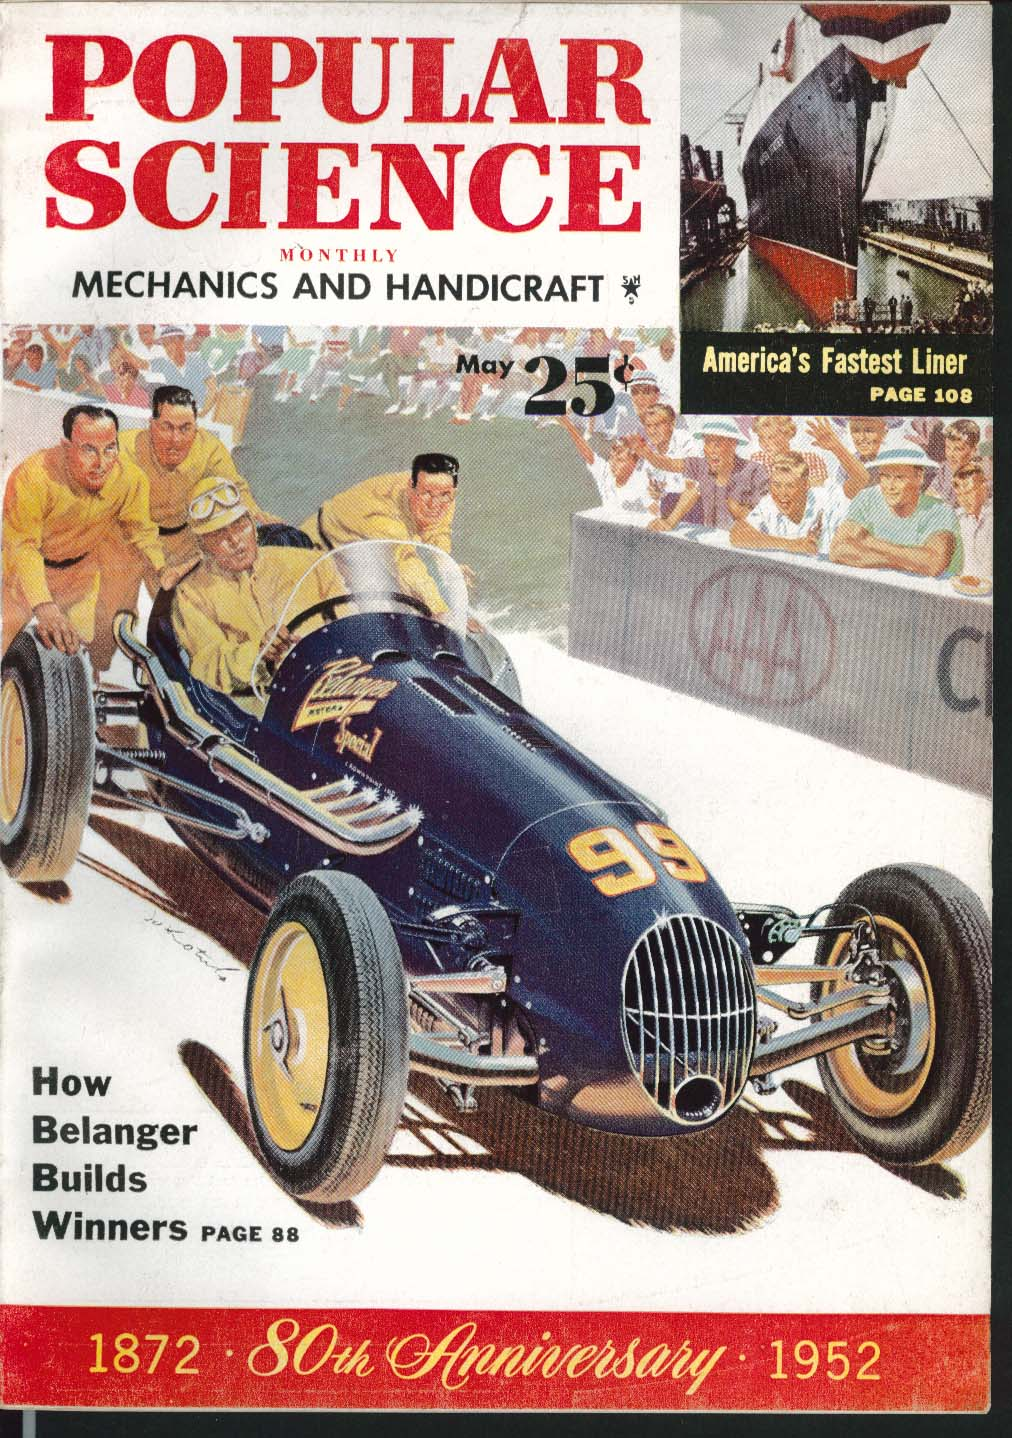 Image for POPULAR SCIENCE Soapbox Racers Kaiser road test Electrical Outlet ++ 5 1952